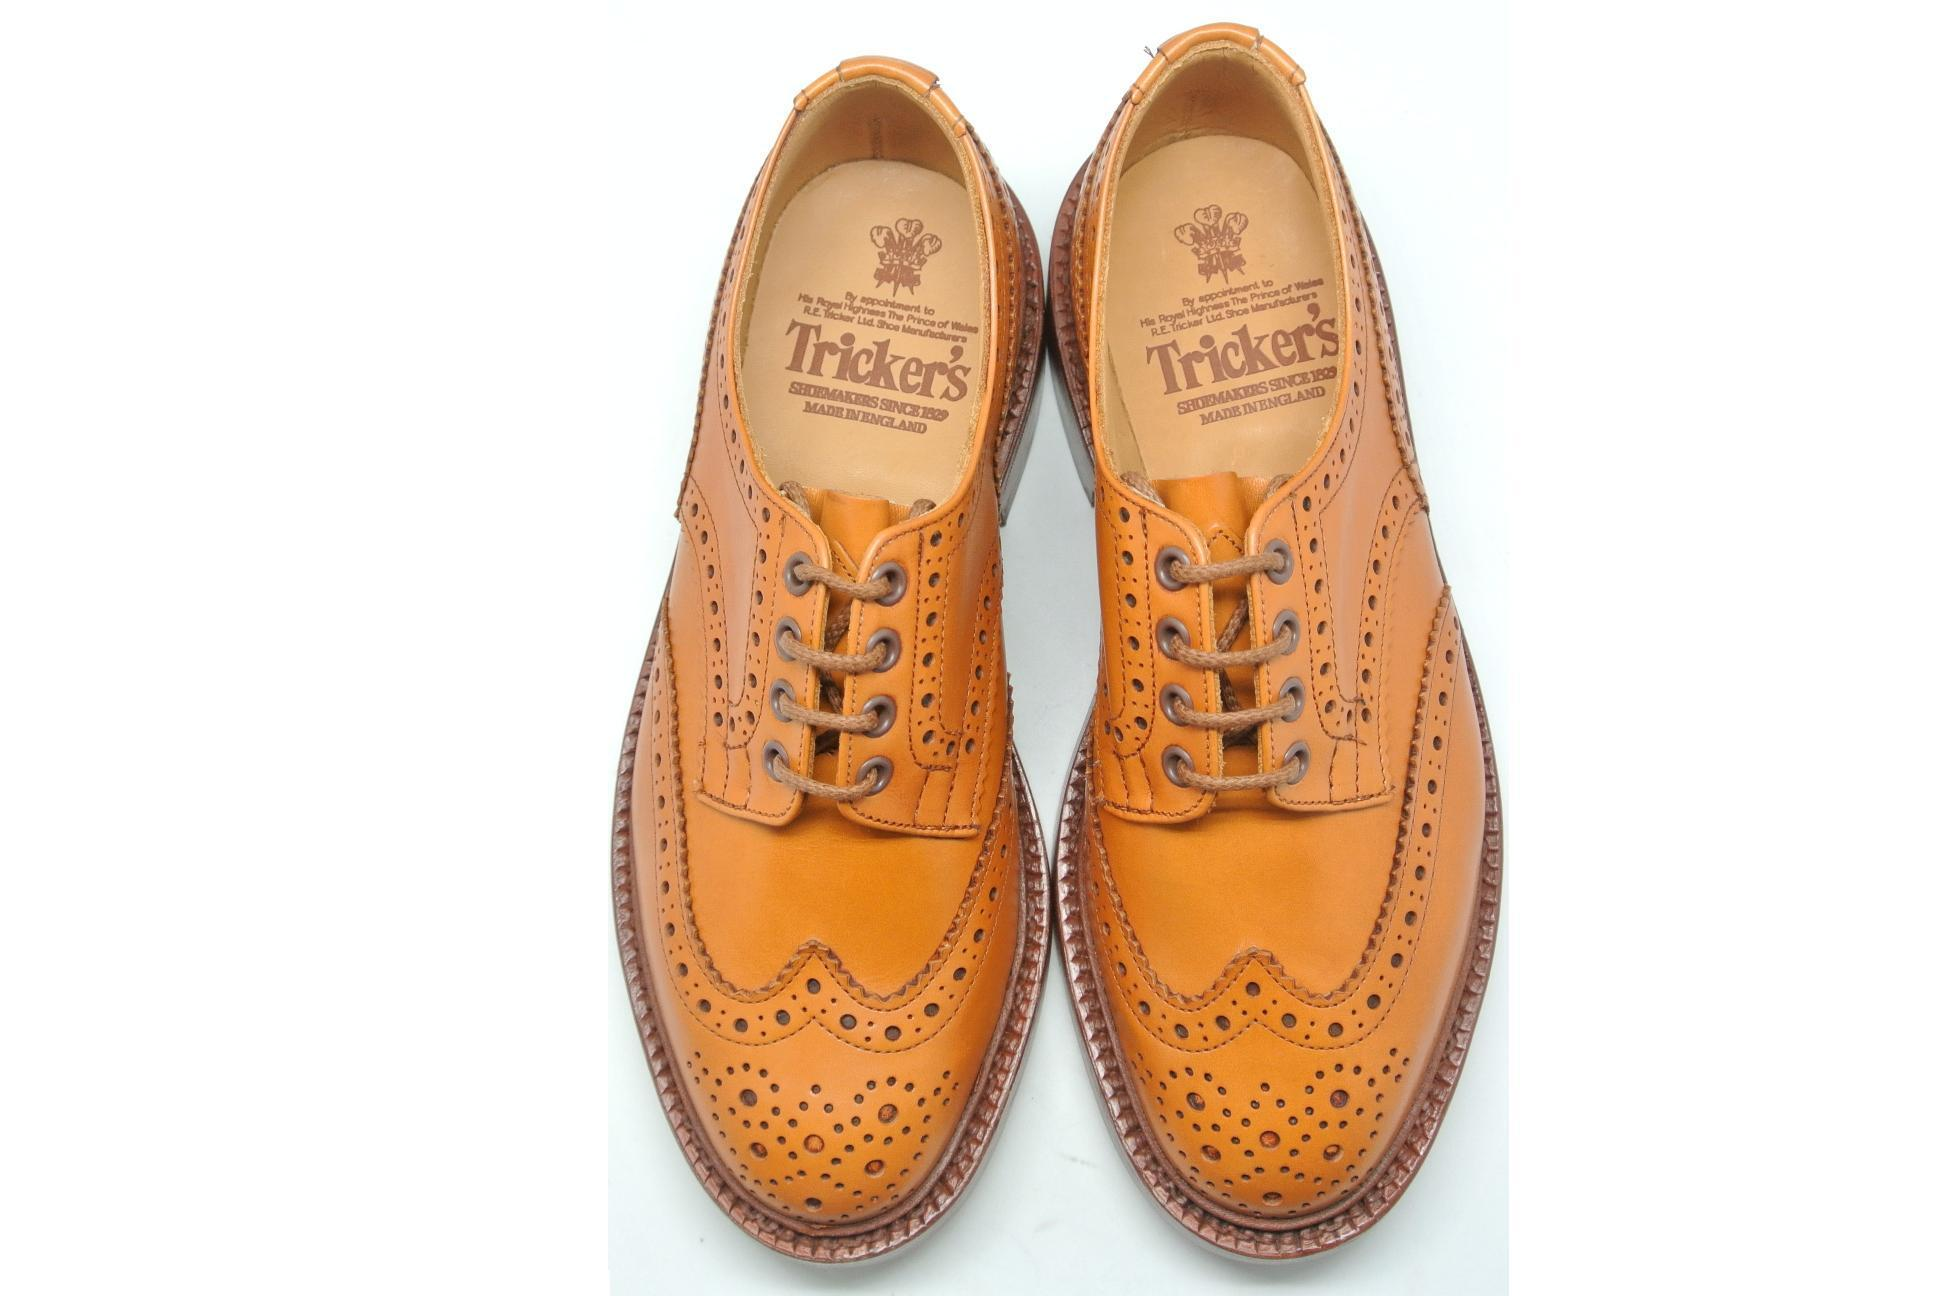 shop tricker's shoes